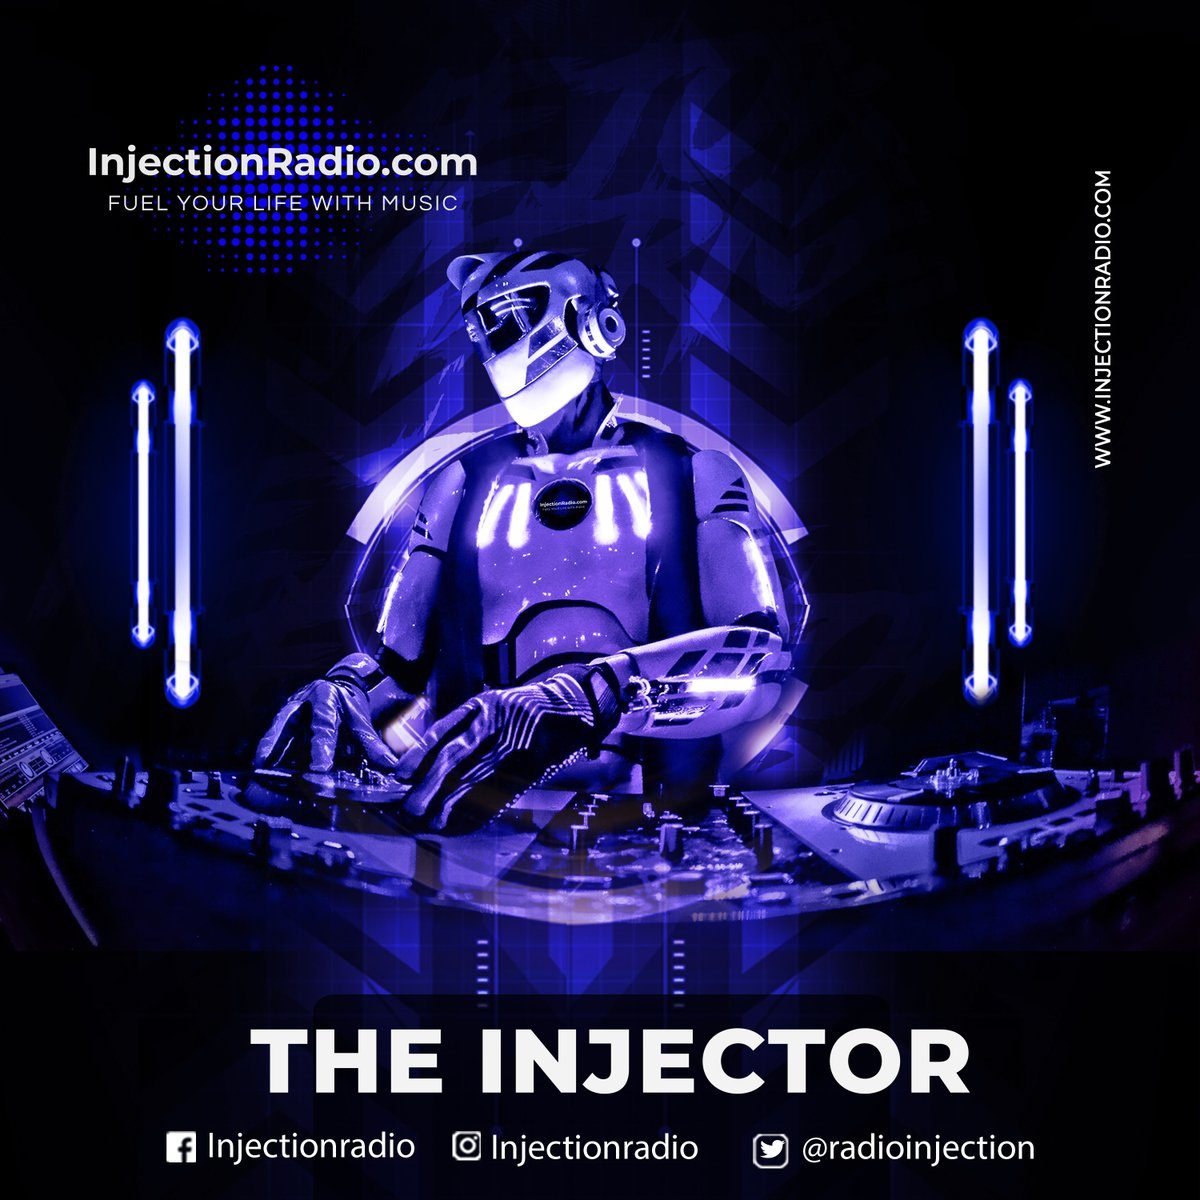 Remember! We currently have no Live DJ's during the day! But THE INJECTOR is here to keep you partying strong! Tune in now at http://www.injectionradio.com #party #partyatwork #partytime #grabthespeaker #liveradio #robotpic.twitter.com/cVVu0YHI2Y